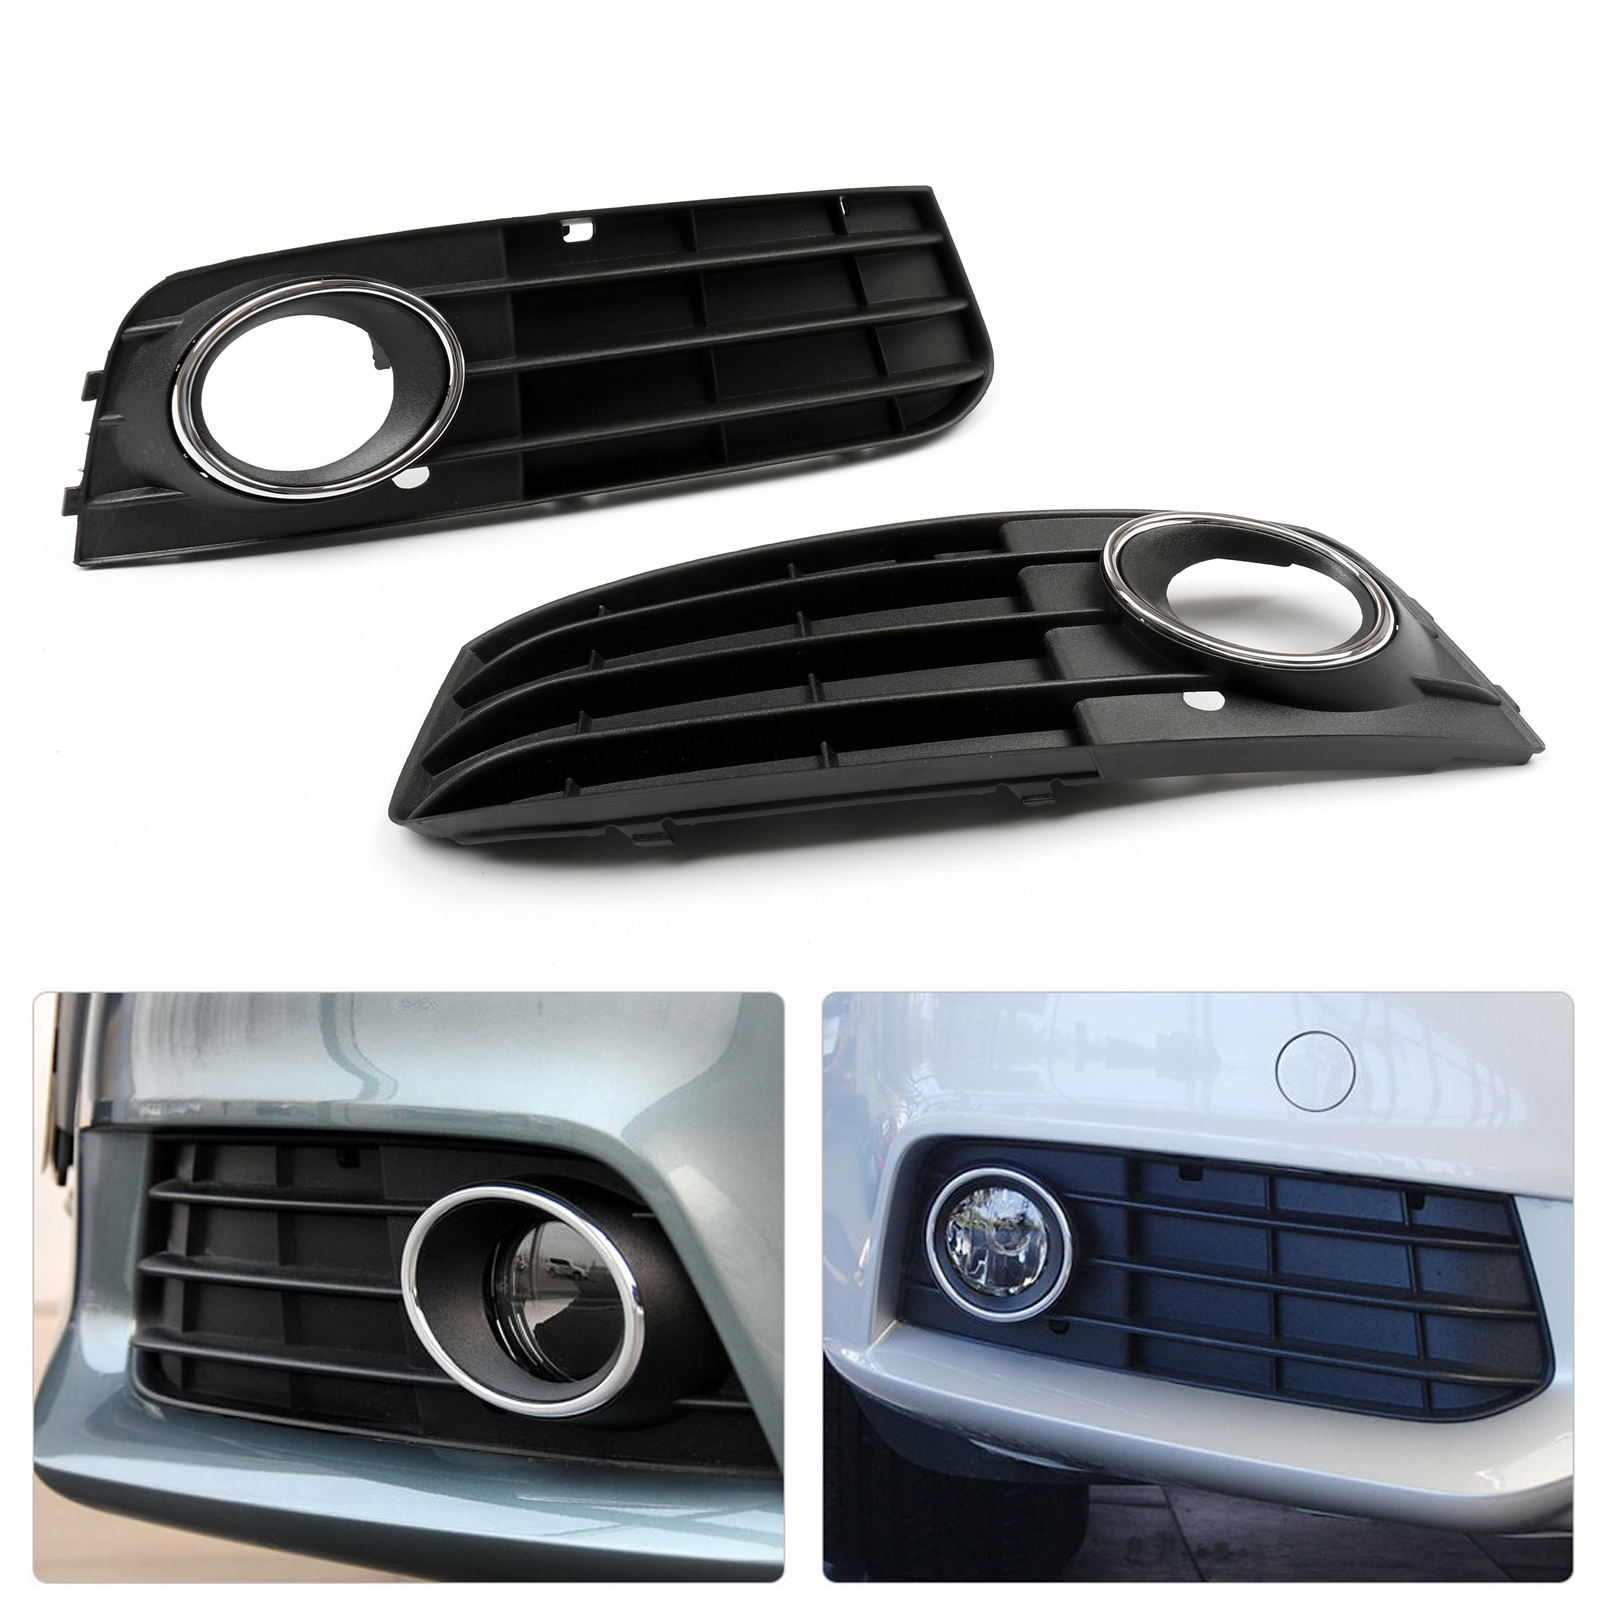 2 pcs front fog light grill grille cover for audi a4 b8. Black Bedroom Furniture Sets. Home Design Ideas